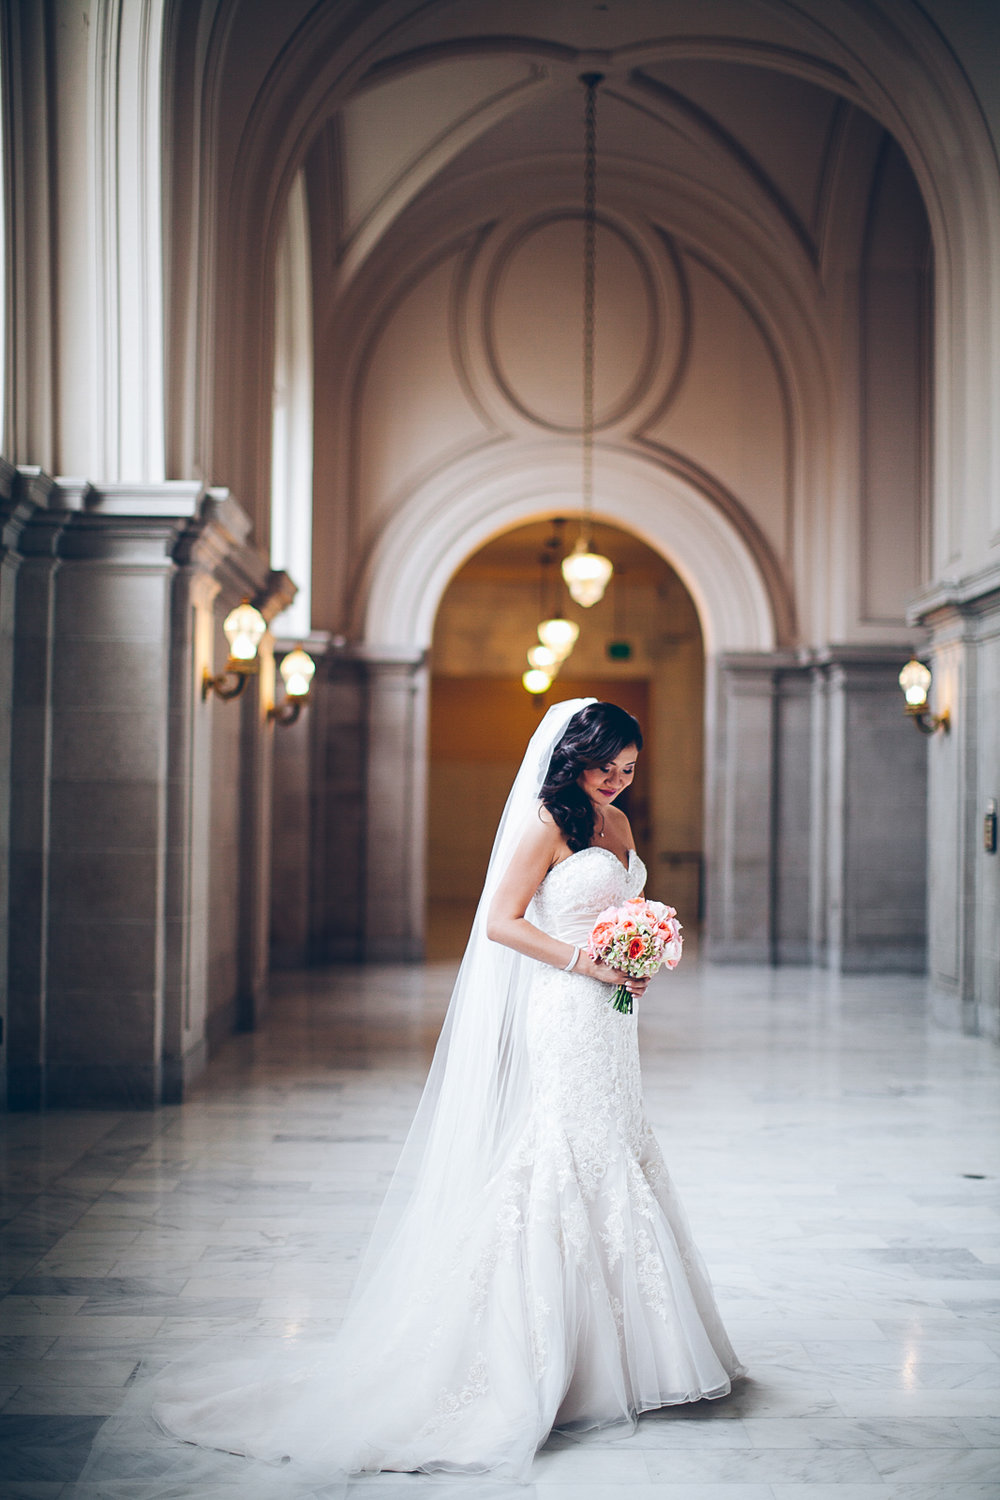 San_francisco_city_hall_wedding_photography_meegan_travis_ebony_siovhan_bokeh_photography_38.jpg